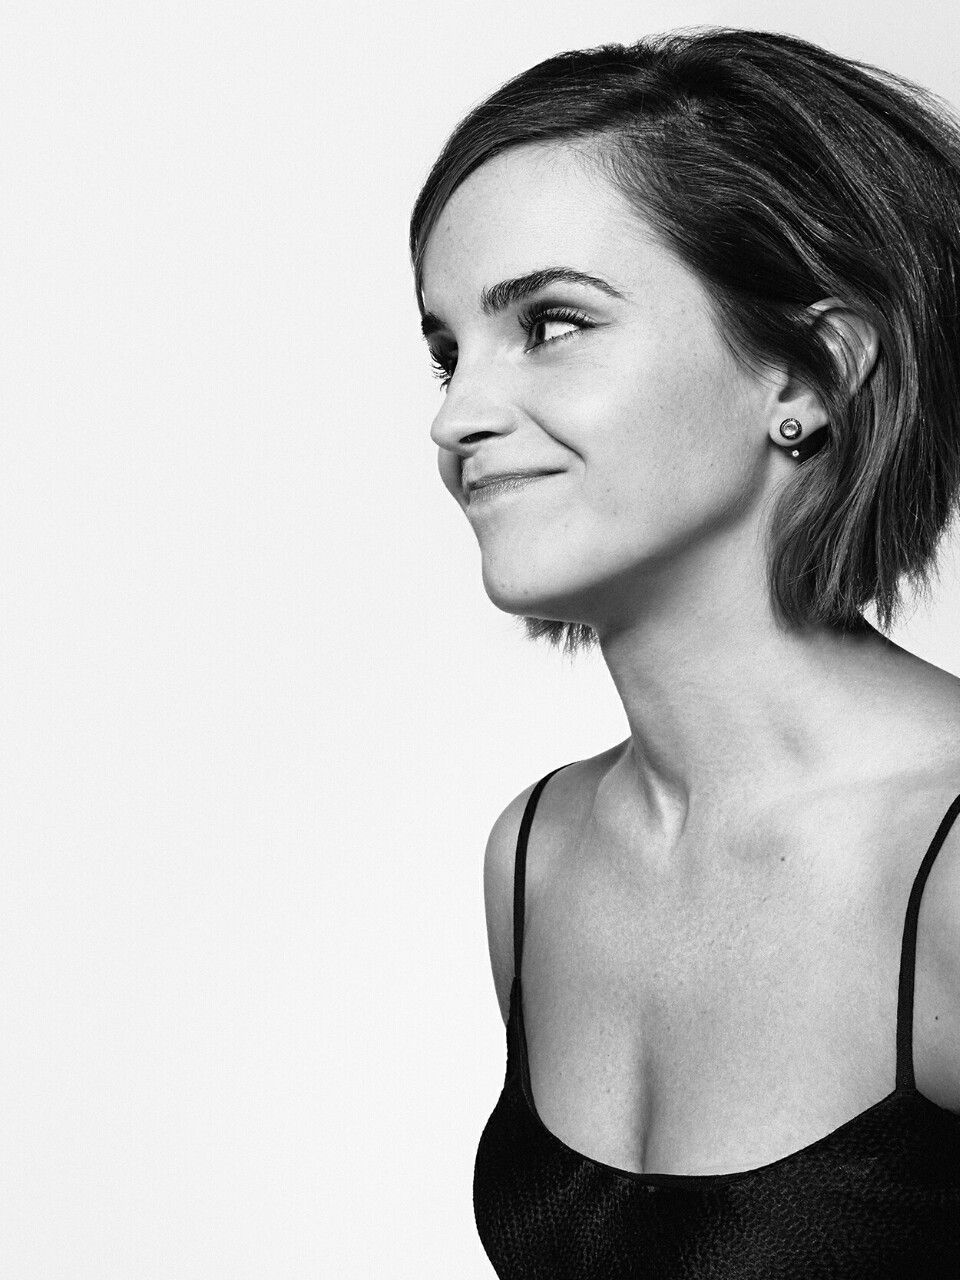 Pin By Camille Juco On Hair Pinterest Emma Watson Haircuts And